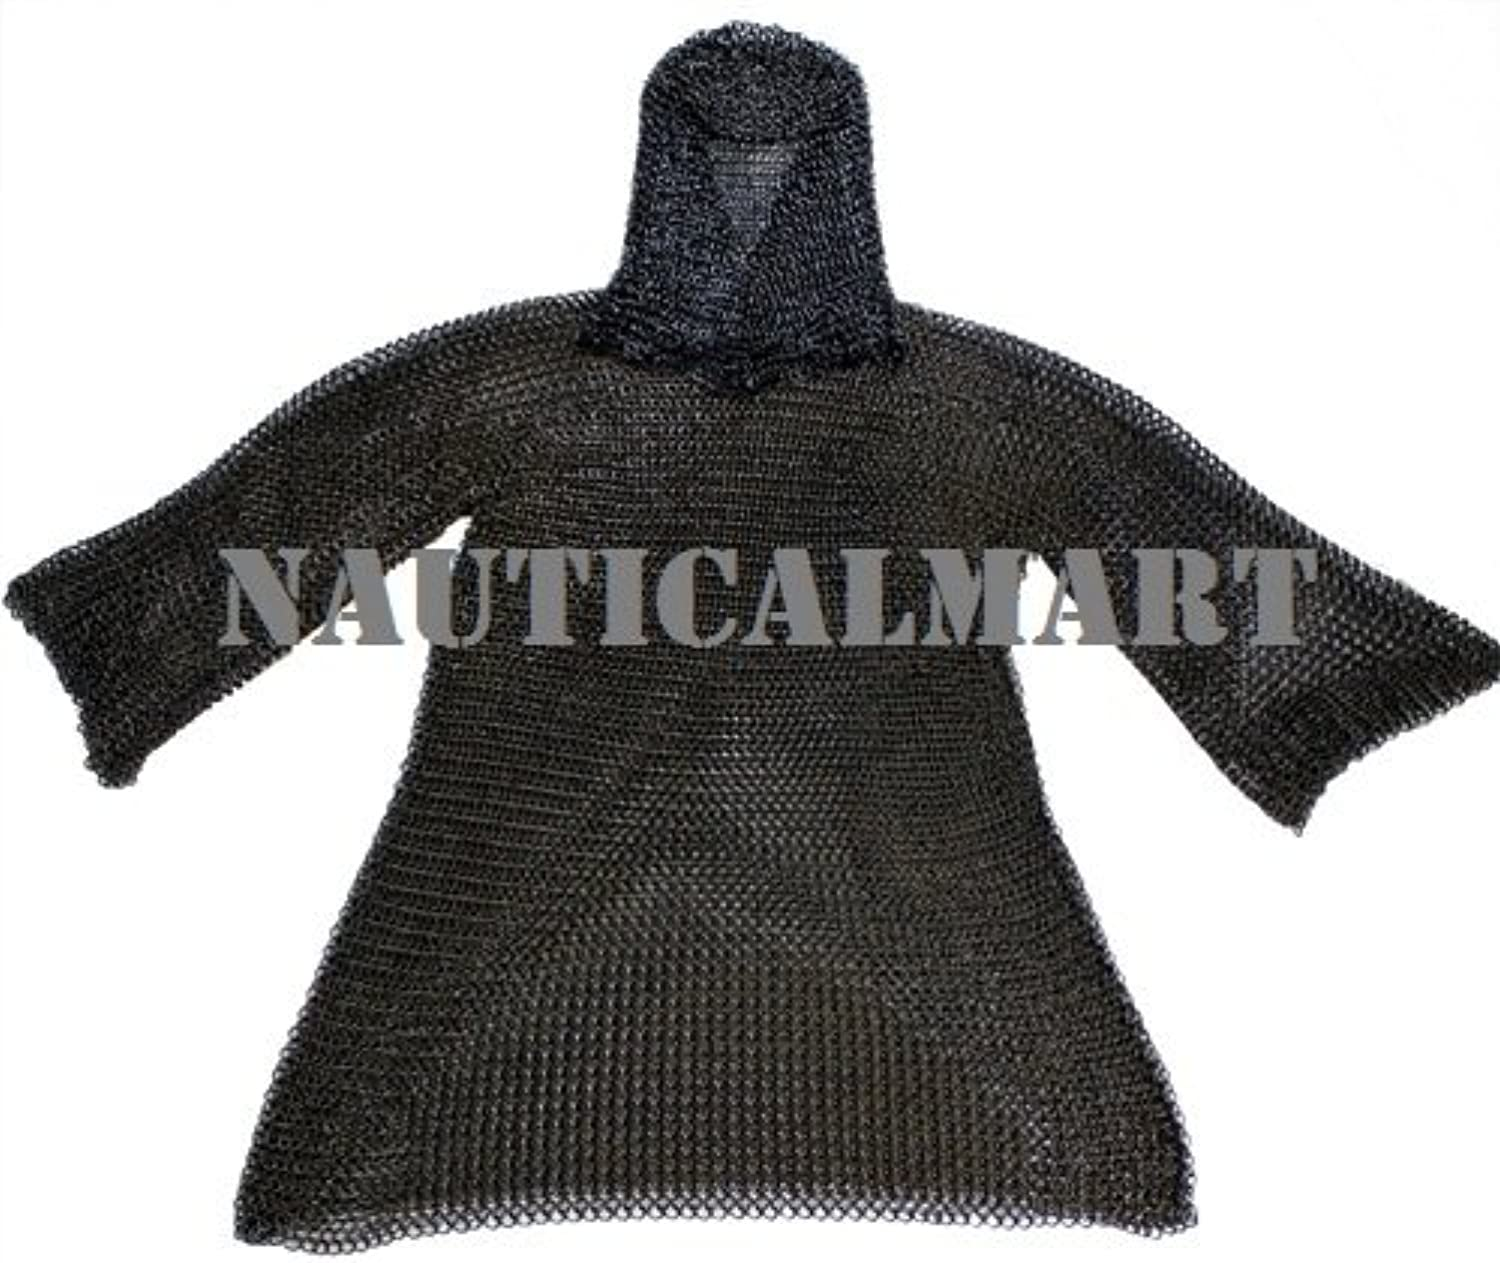 NAUTICALMART Black Medieval Chainmail with Coif